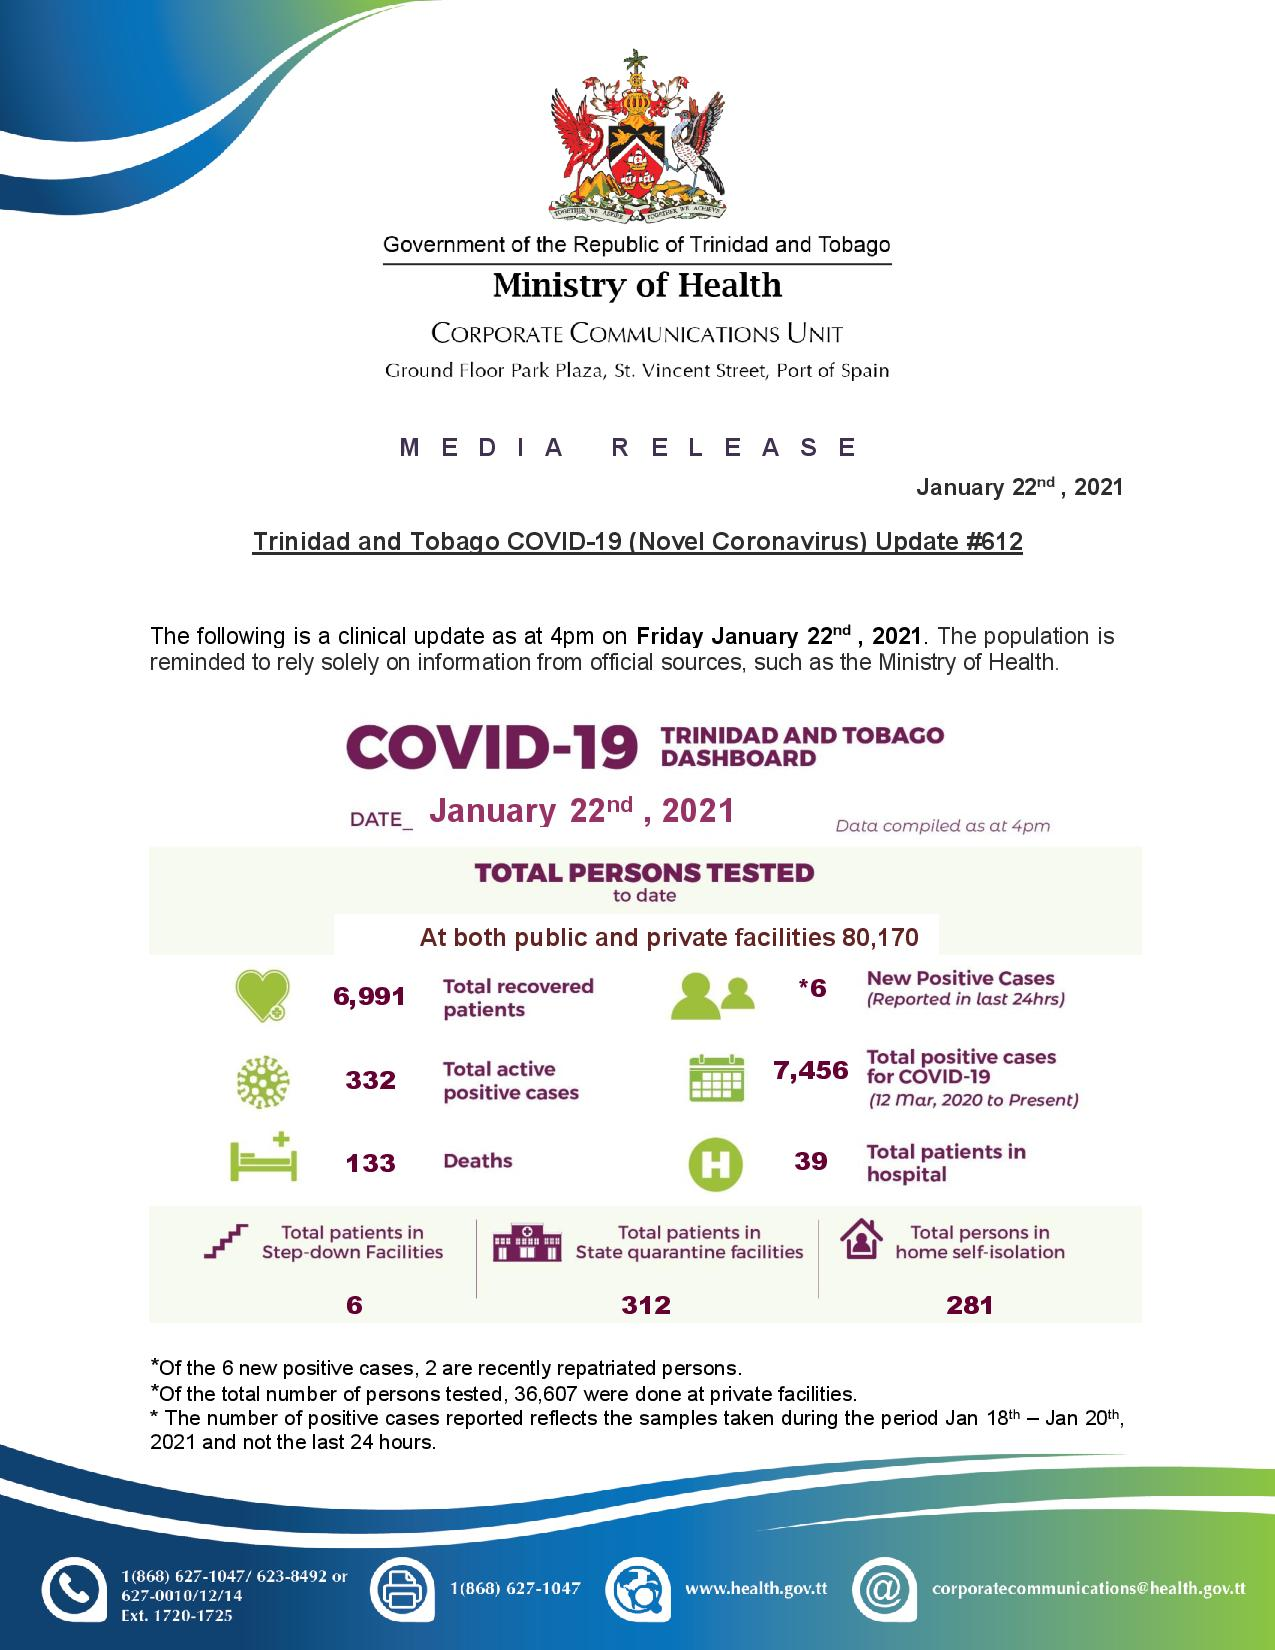 COVID-19 UPDATE - Friday 22nd January 2021 Dashboard